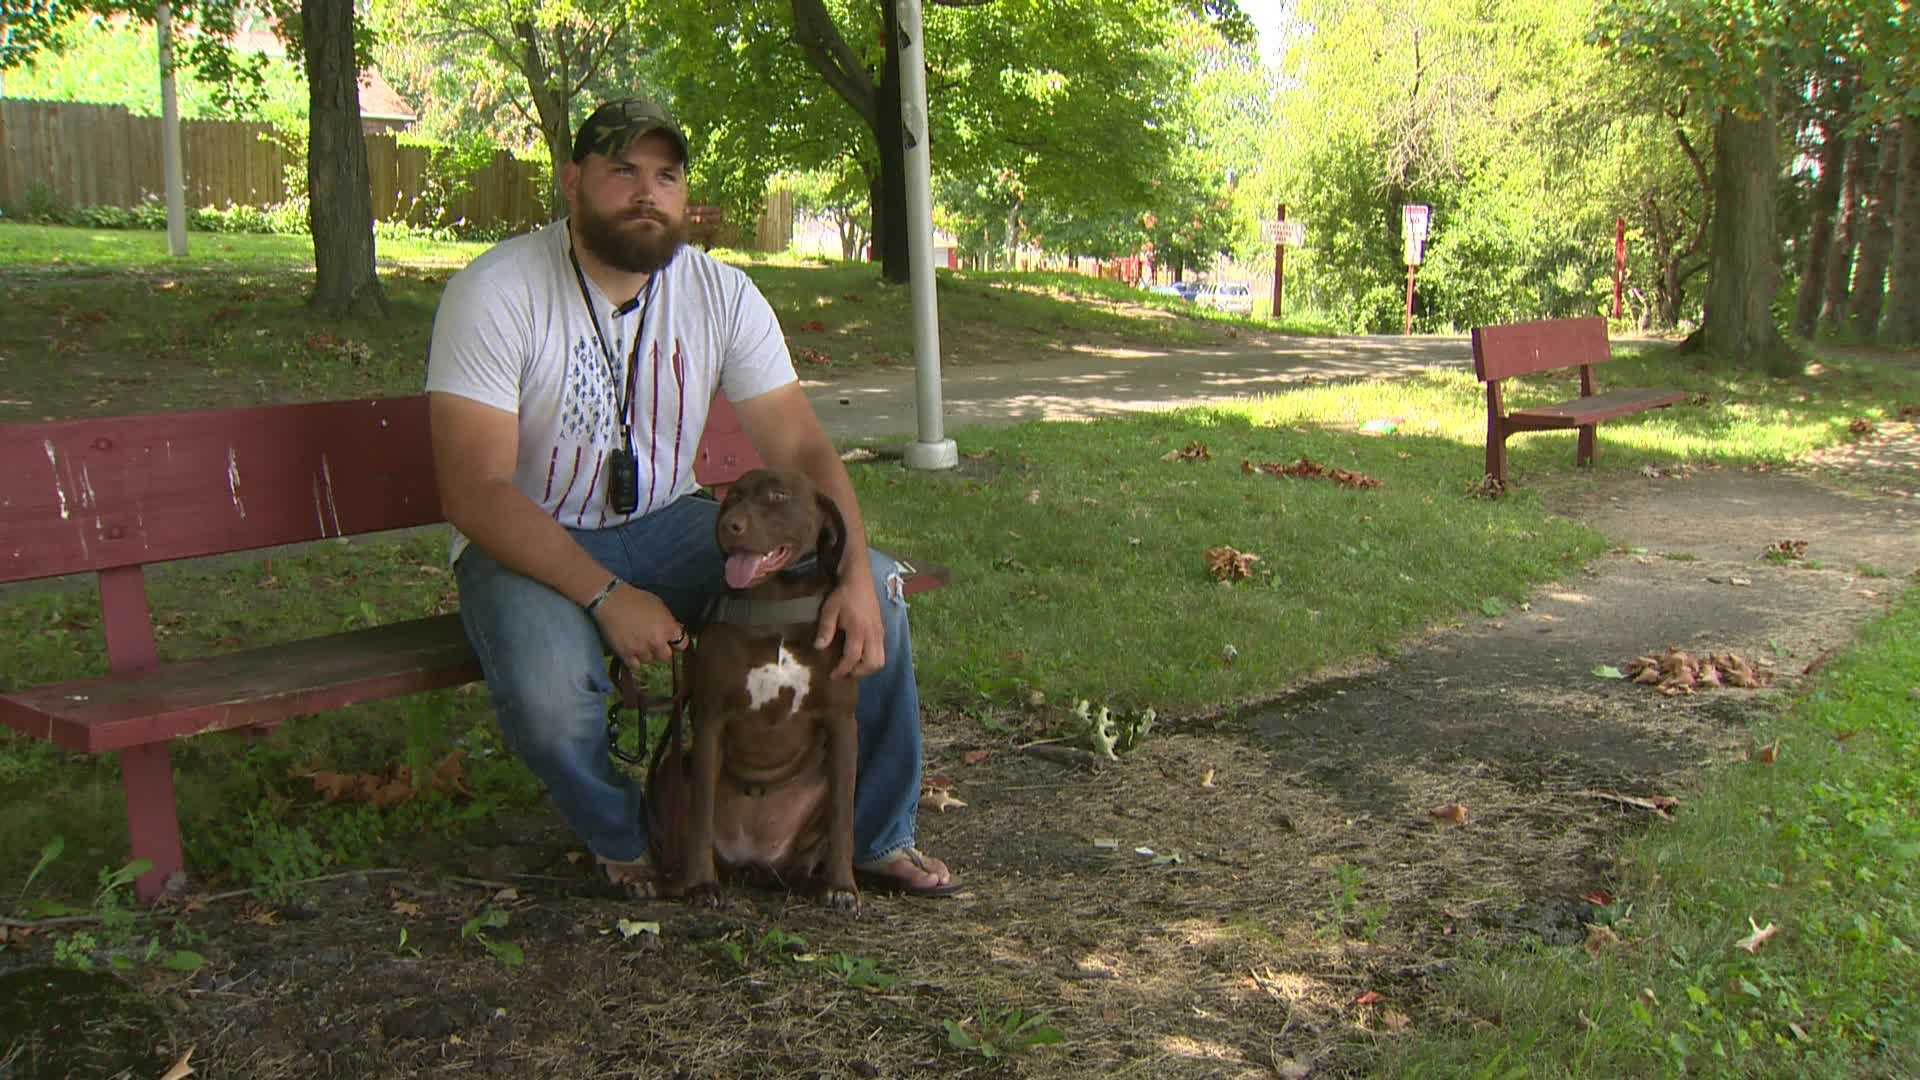 Uniontown Marine Corps veteran asked to leave bar because of service dog